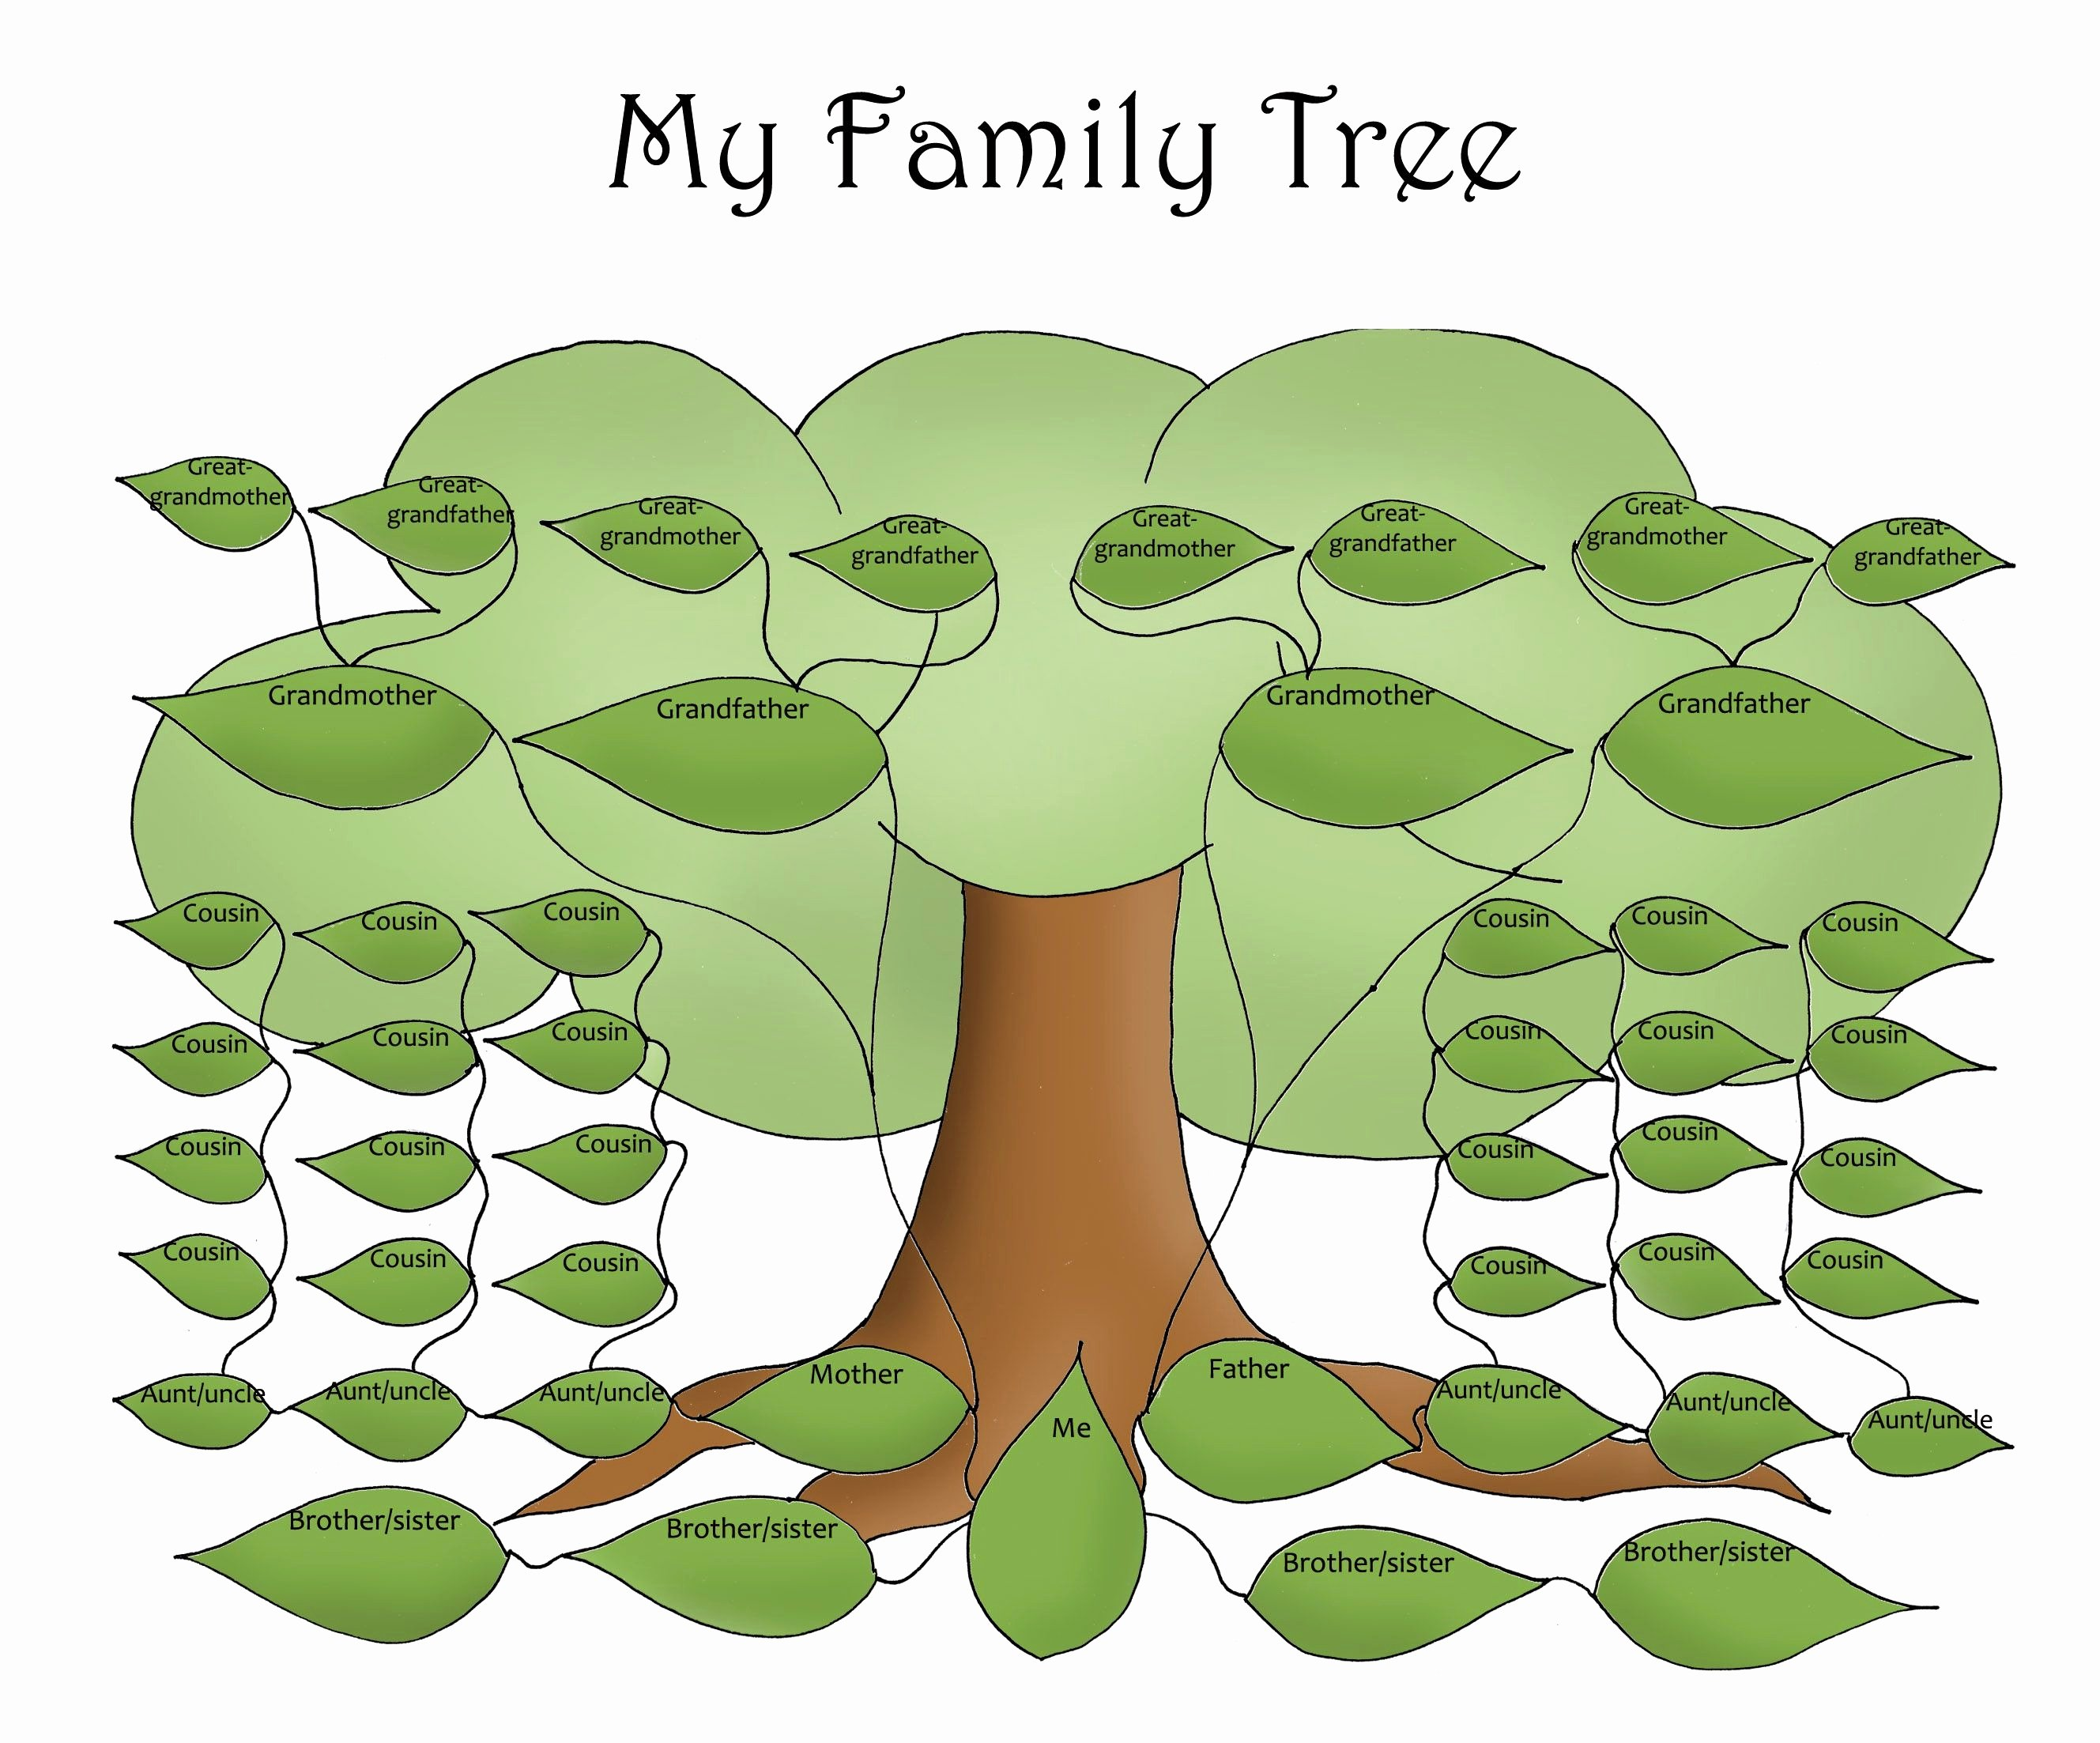 Medical Family Tree Template Best Of Free Editable Family Tree Template Daily Roabox